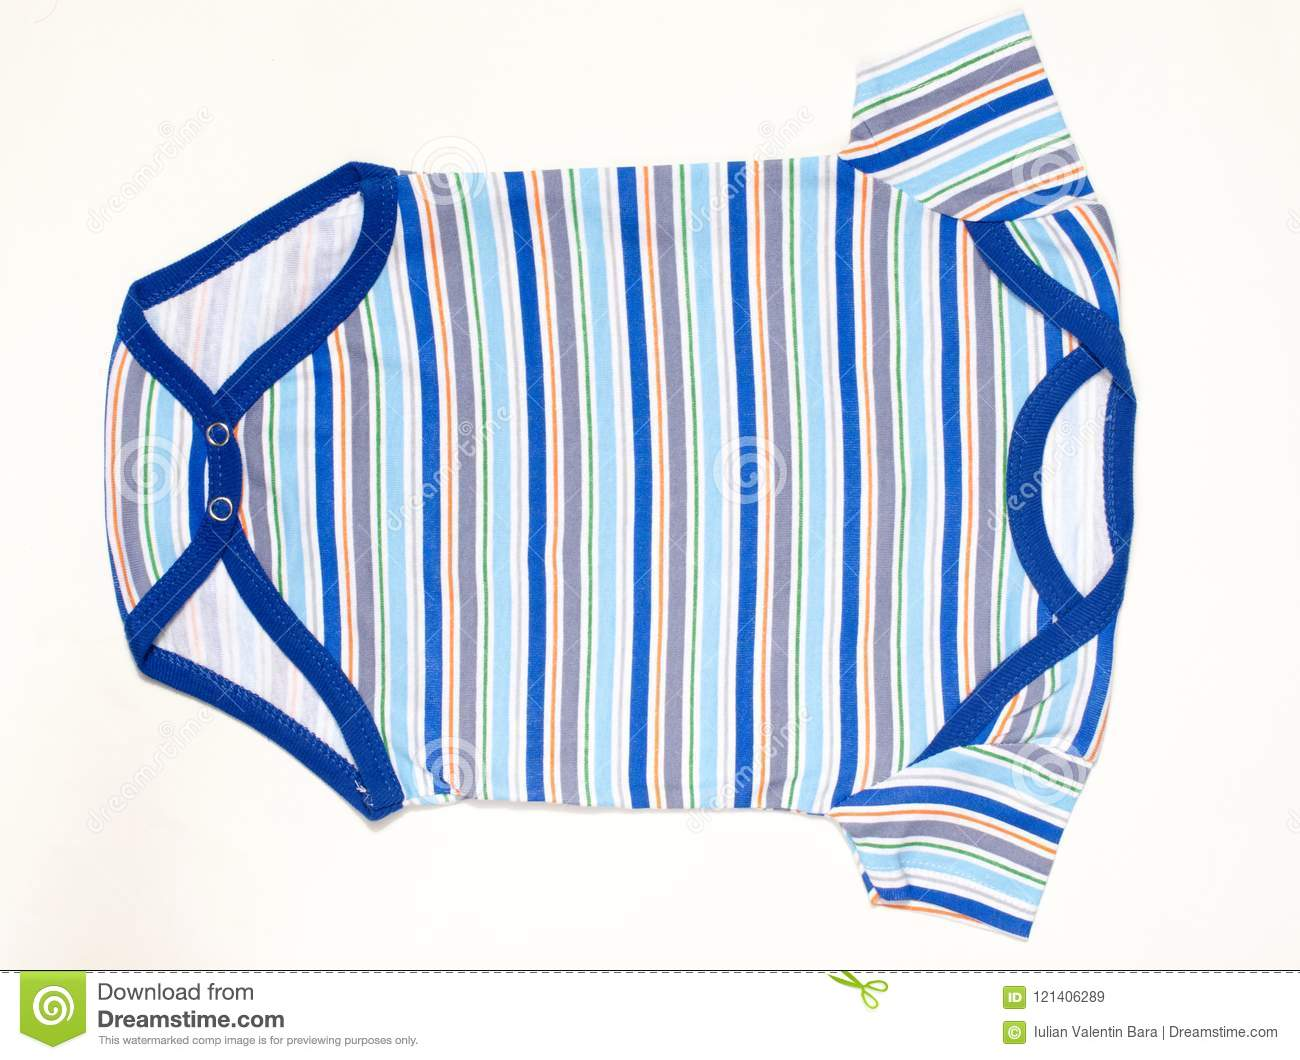 d8e63d1fc Winter Baby Clothes Lying On The Floor. Stock Image - Image of ...